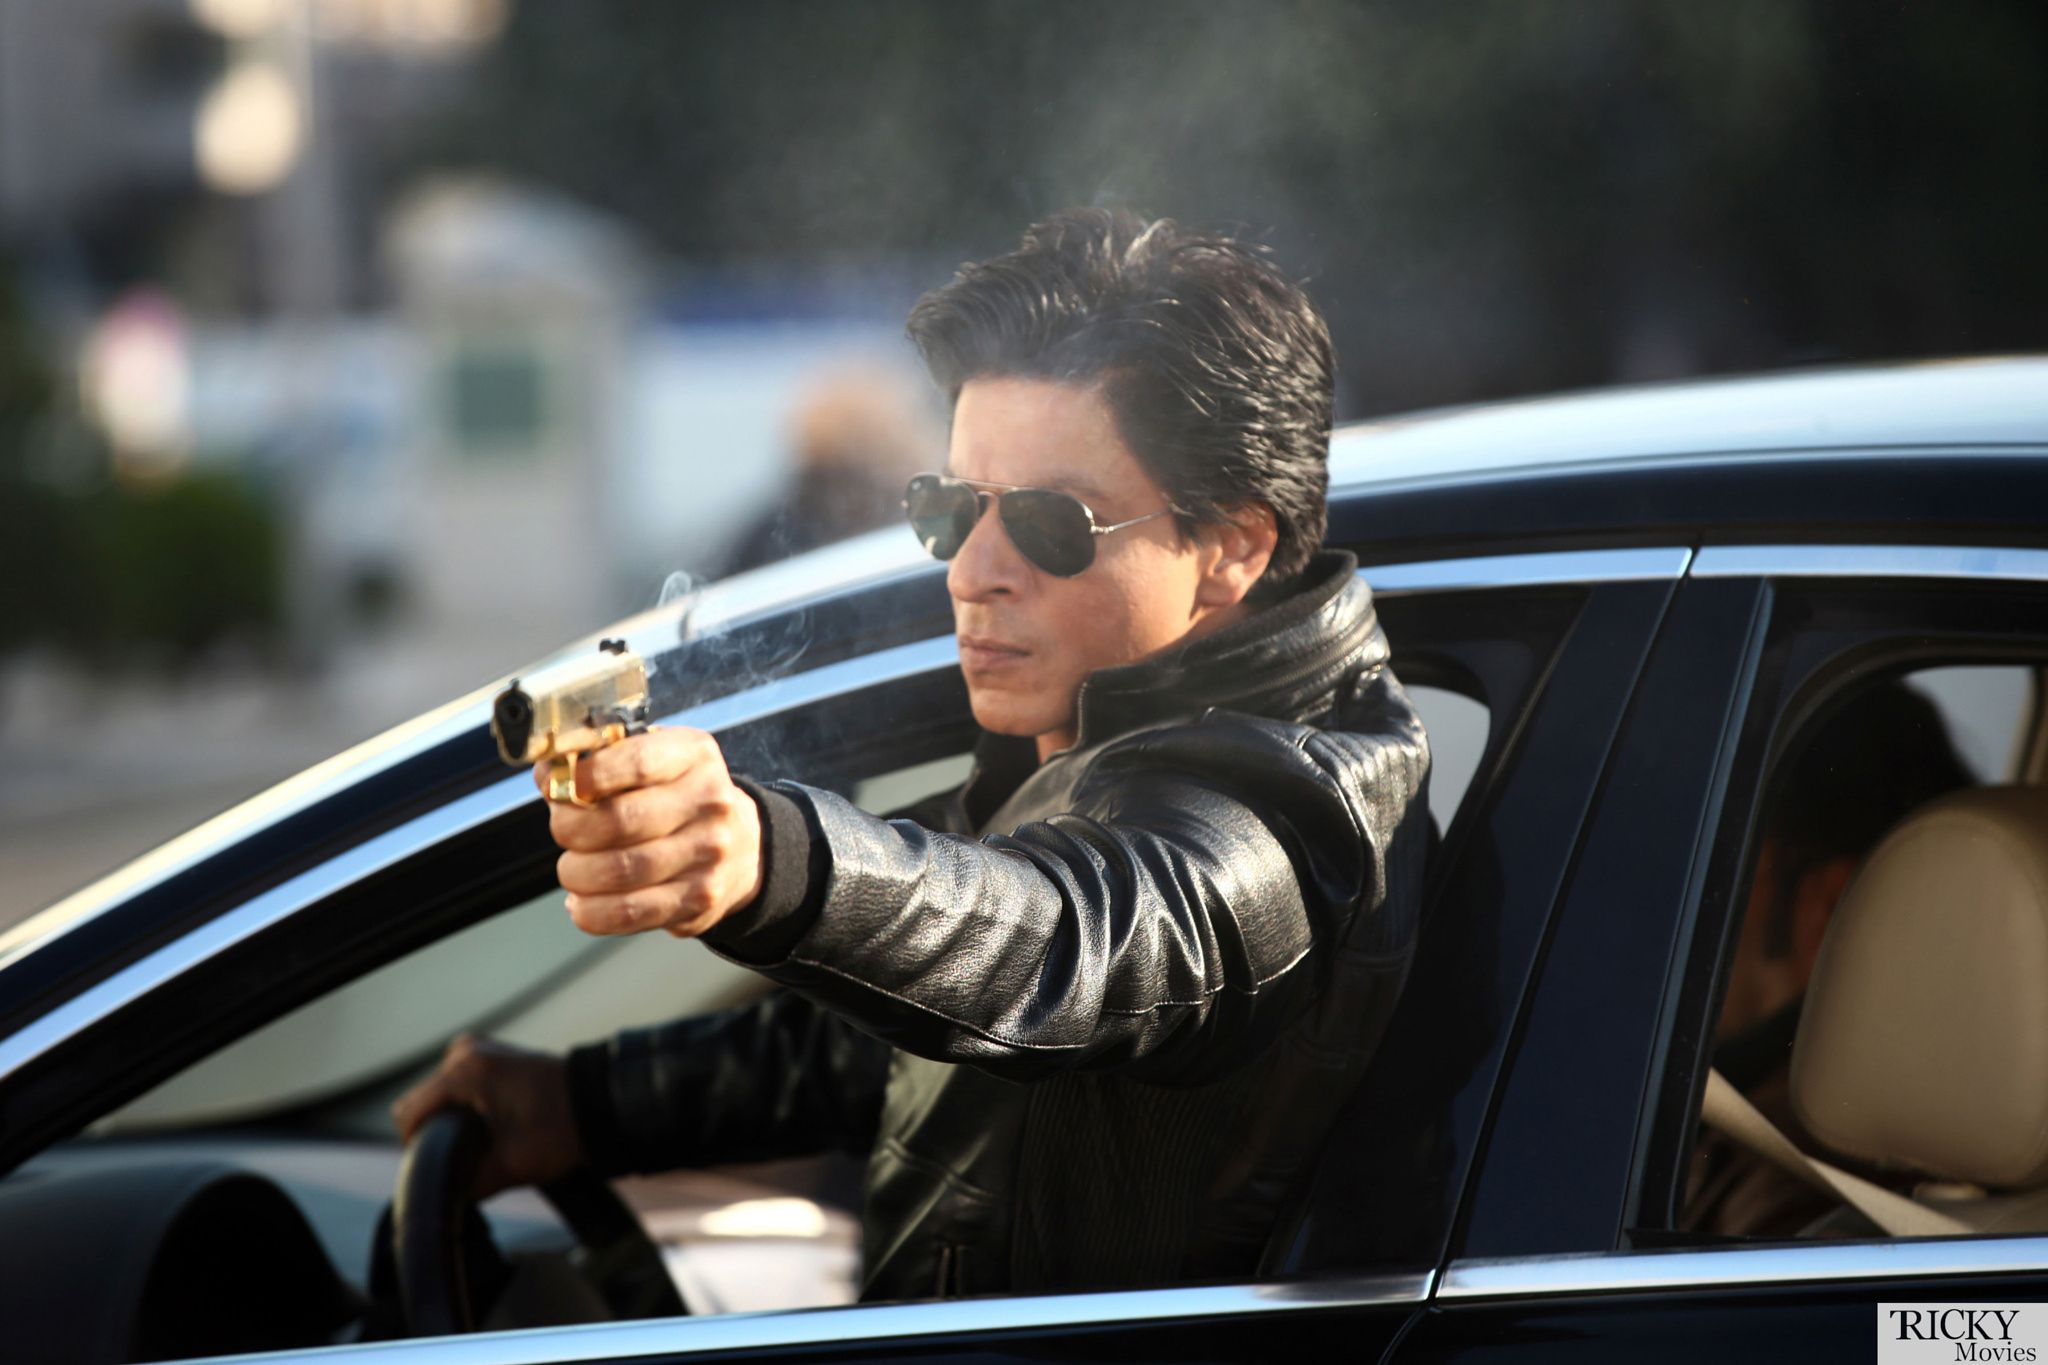 Srk s action scene from dilwale movie dilwale 2015 full movie online http